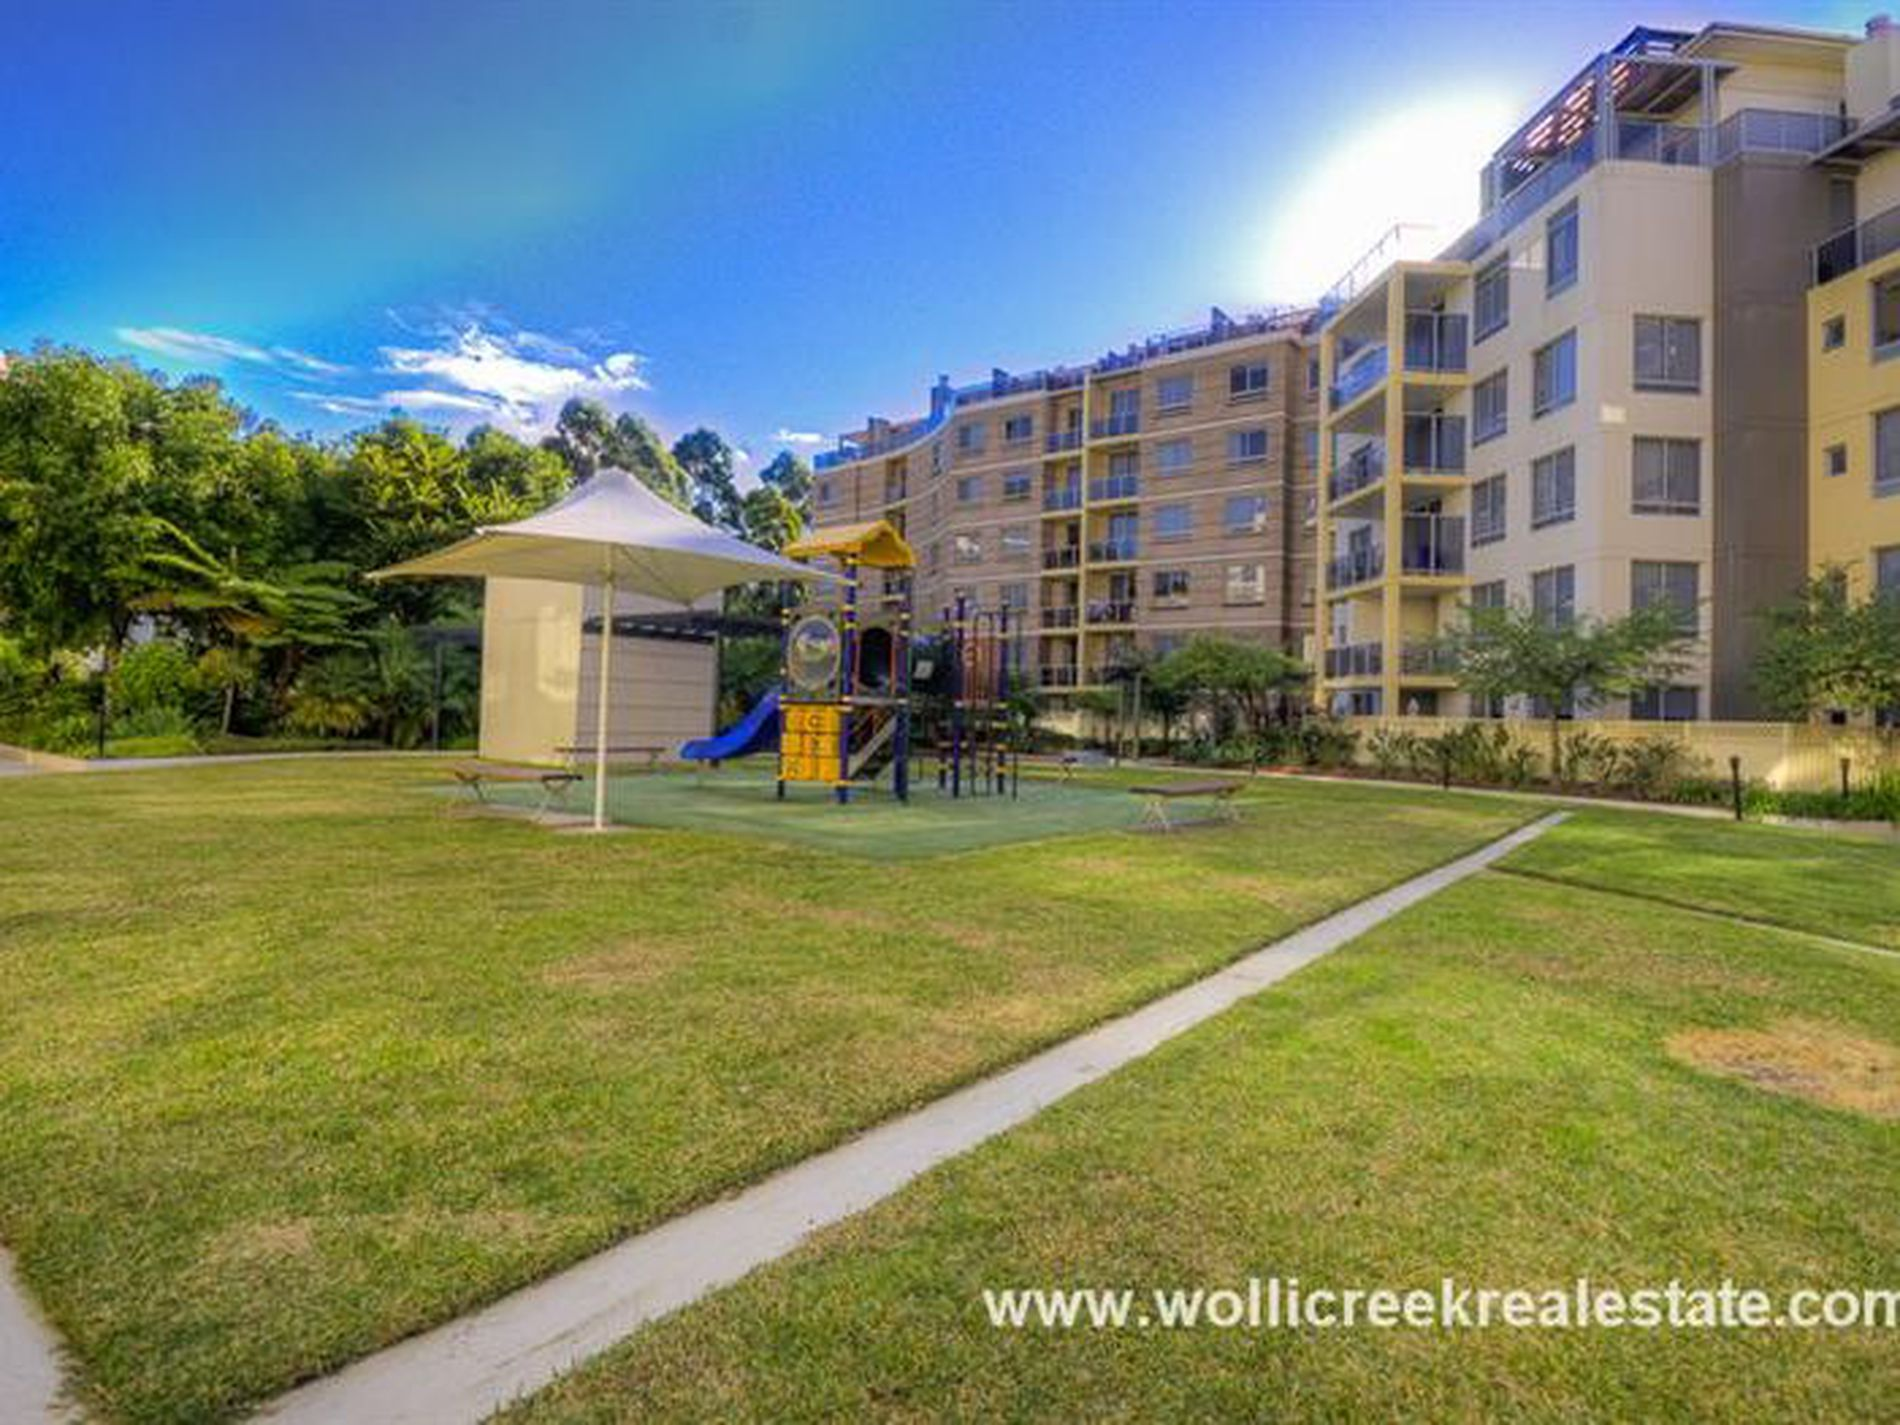 119 / 88 Bonar Street, Wolli Creek